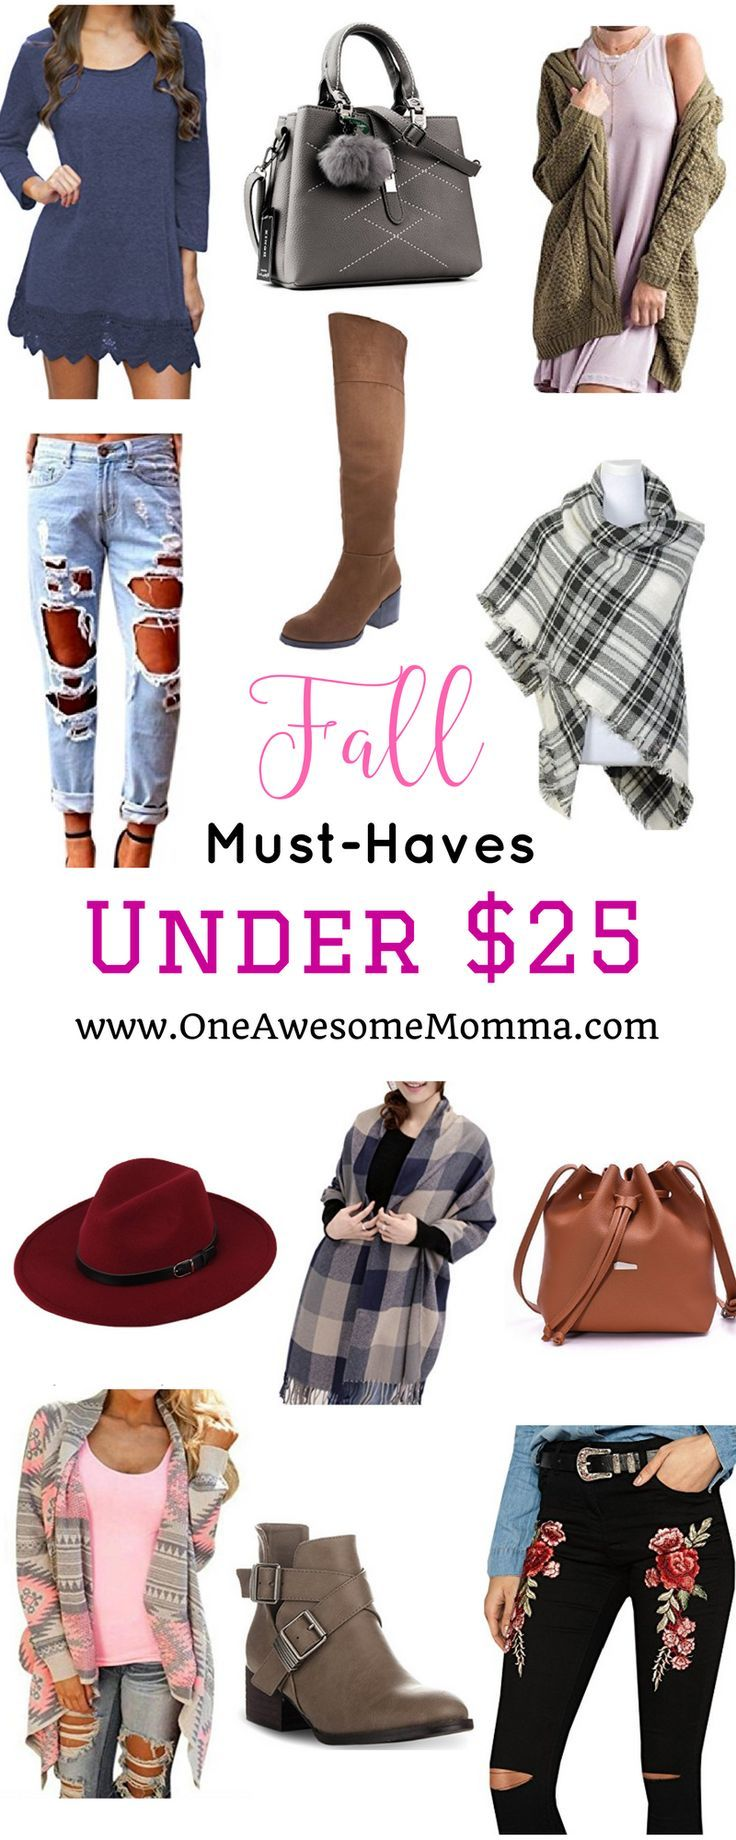 Fall Must-Haves Under $25